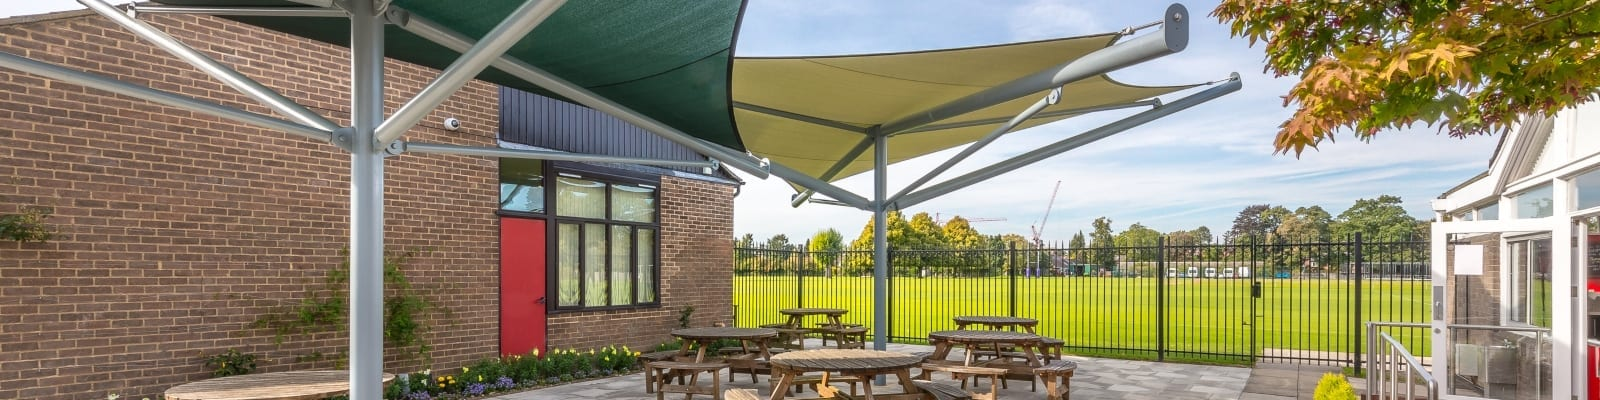 The Perse School Green Shade Sails